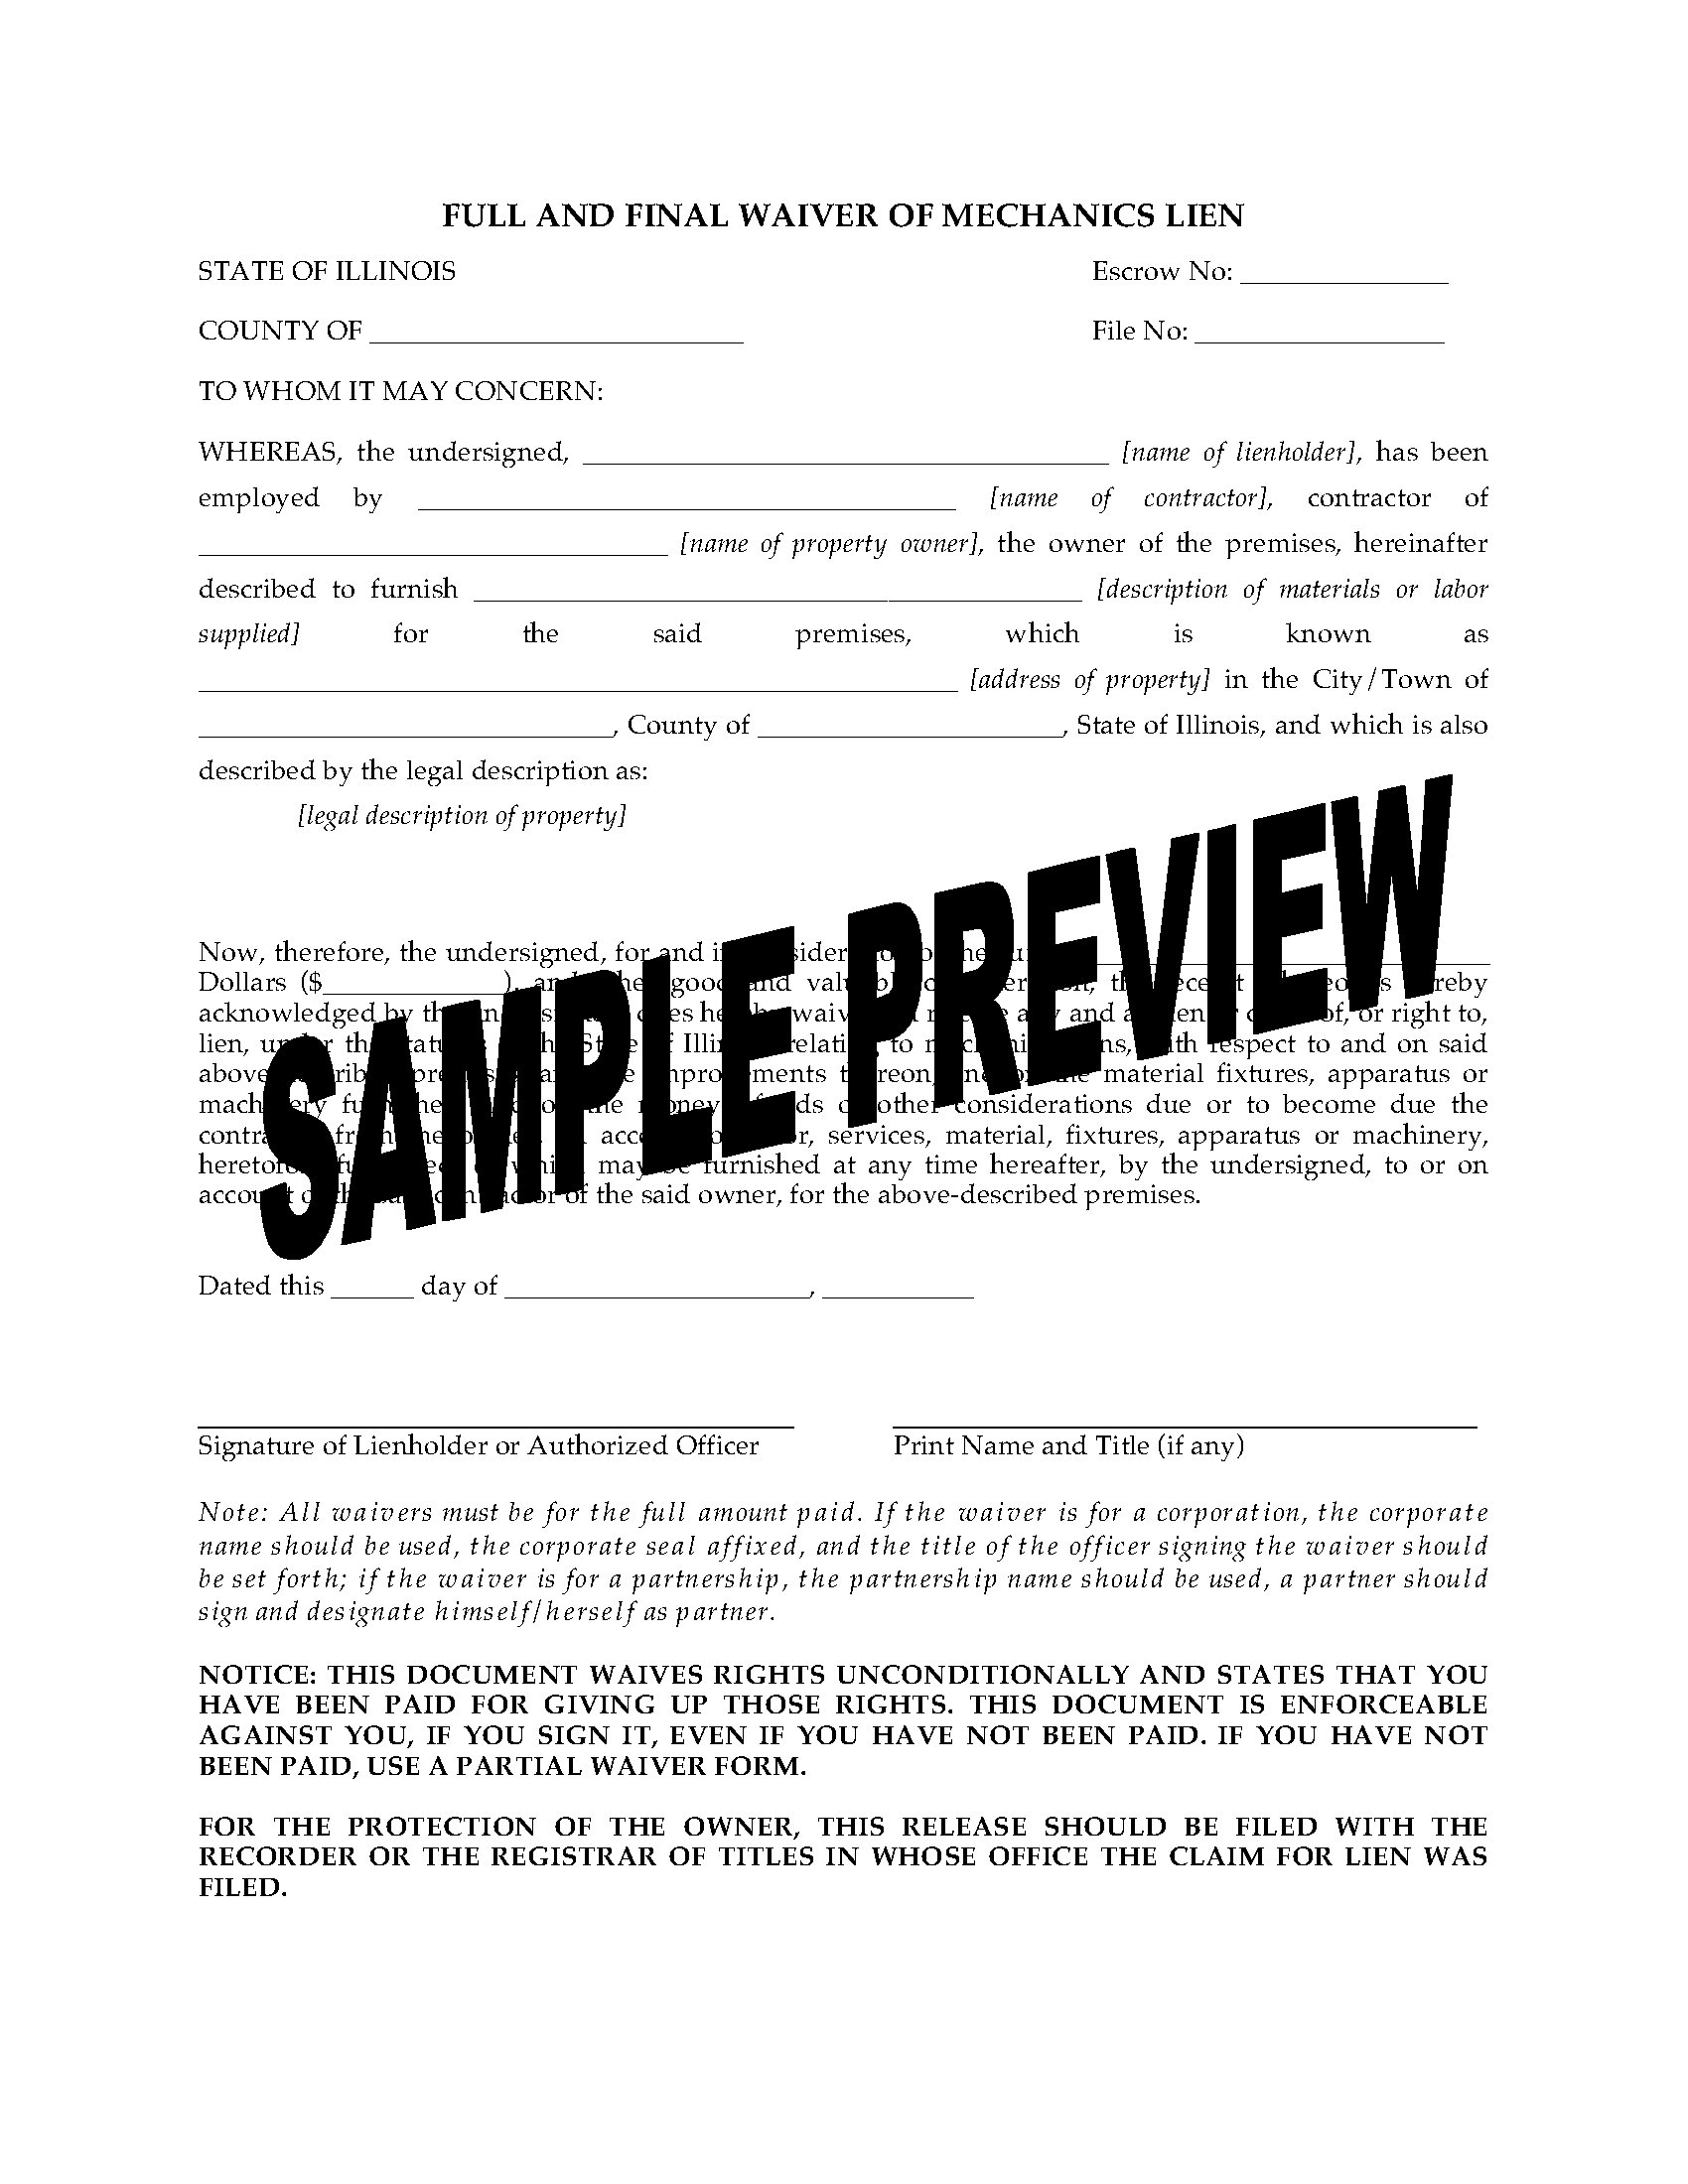 Illinois lien waiver forms package legal forms and business picture of illinois lien waiver forms package maxwellsz